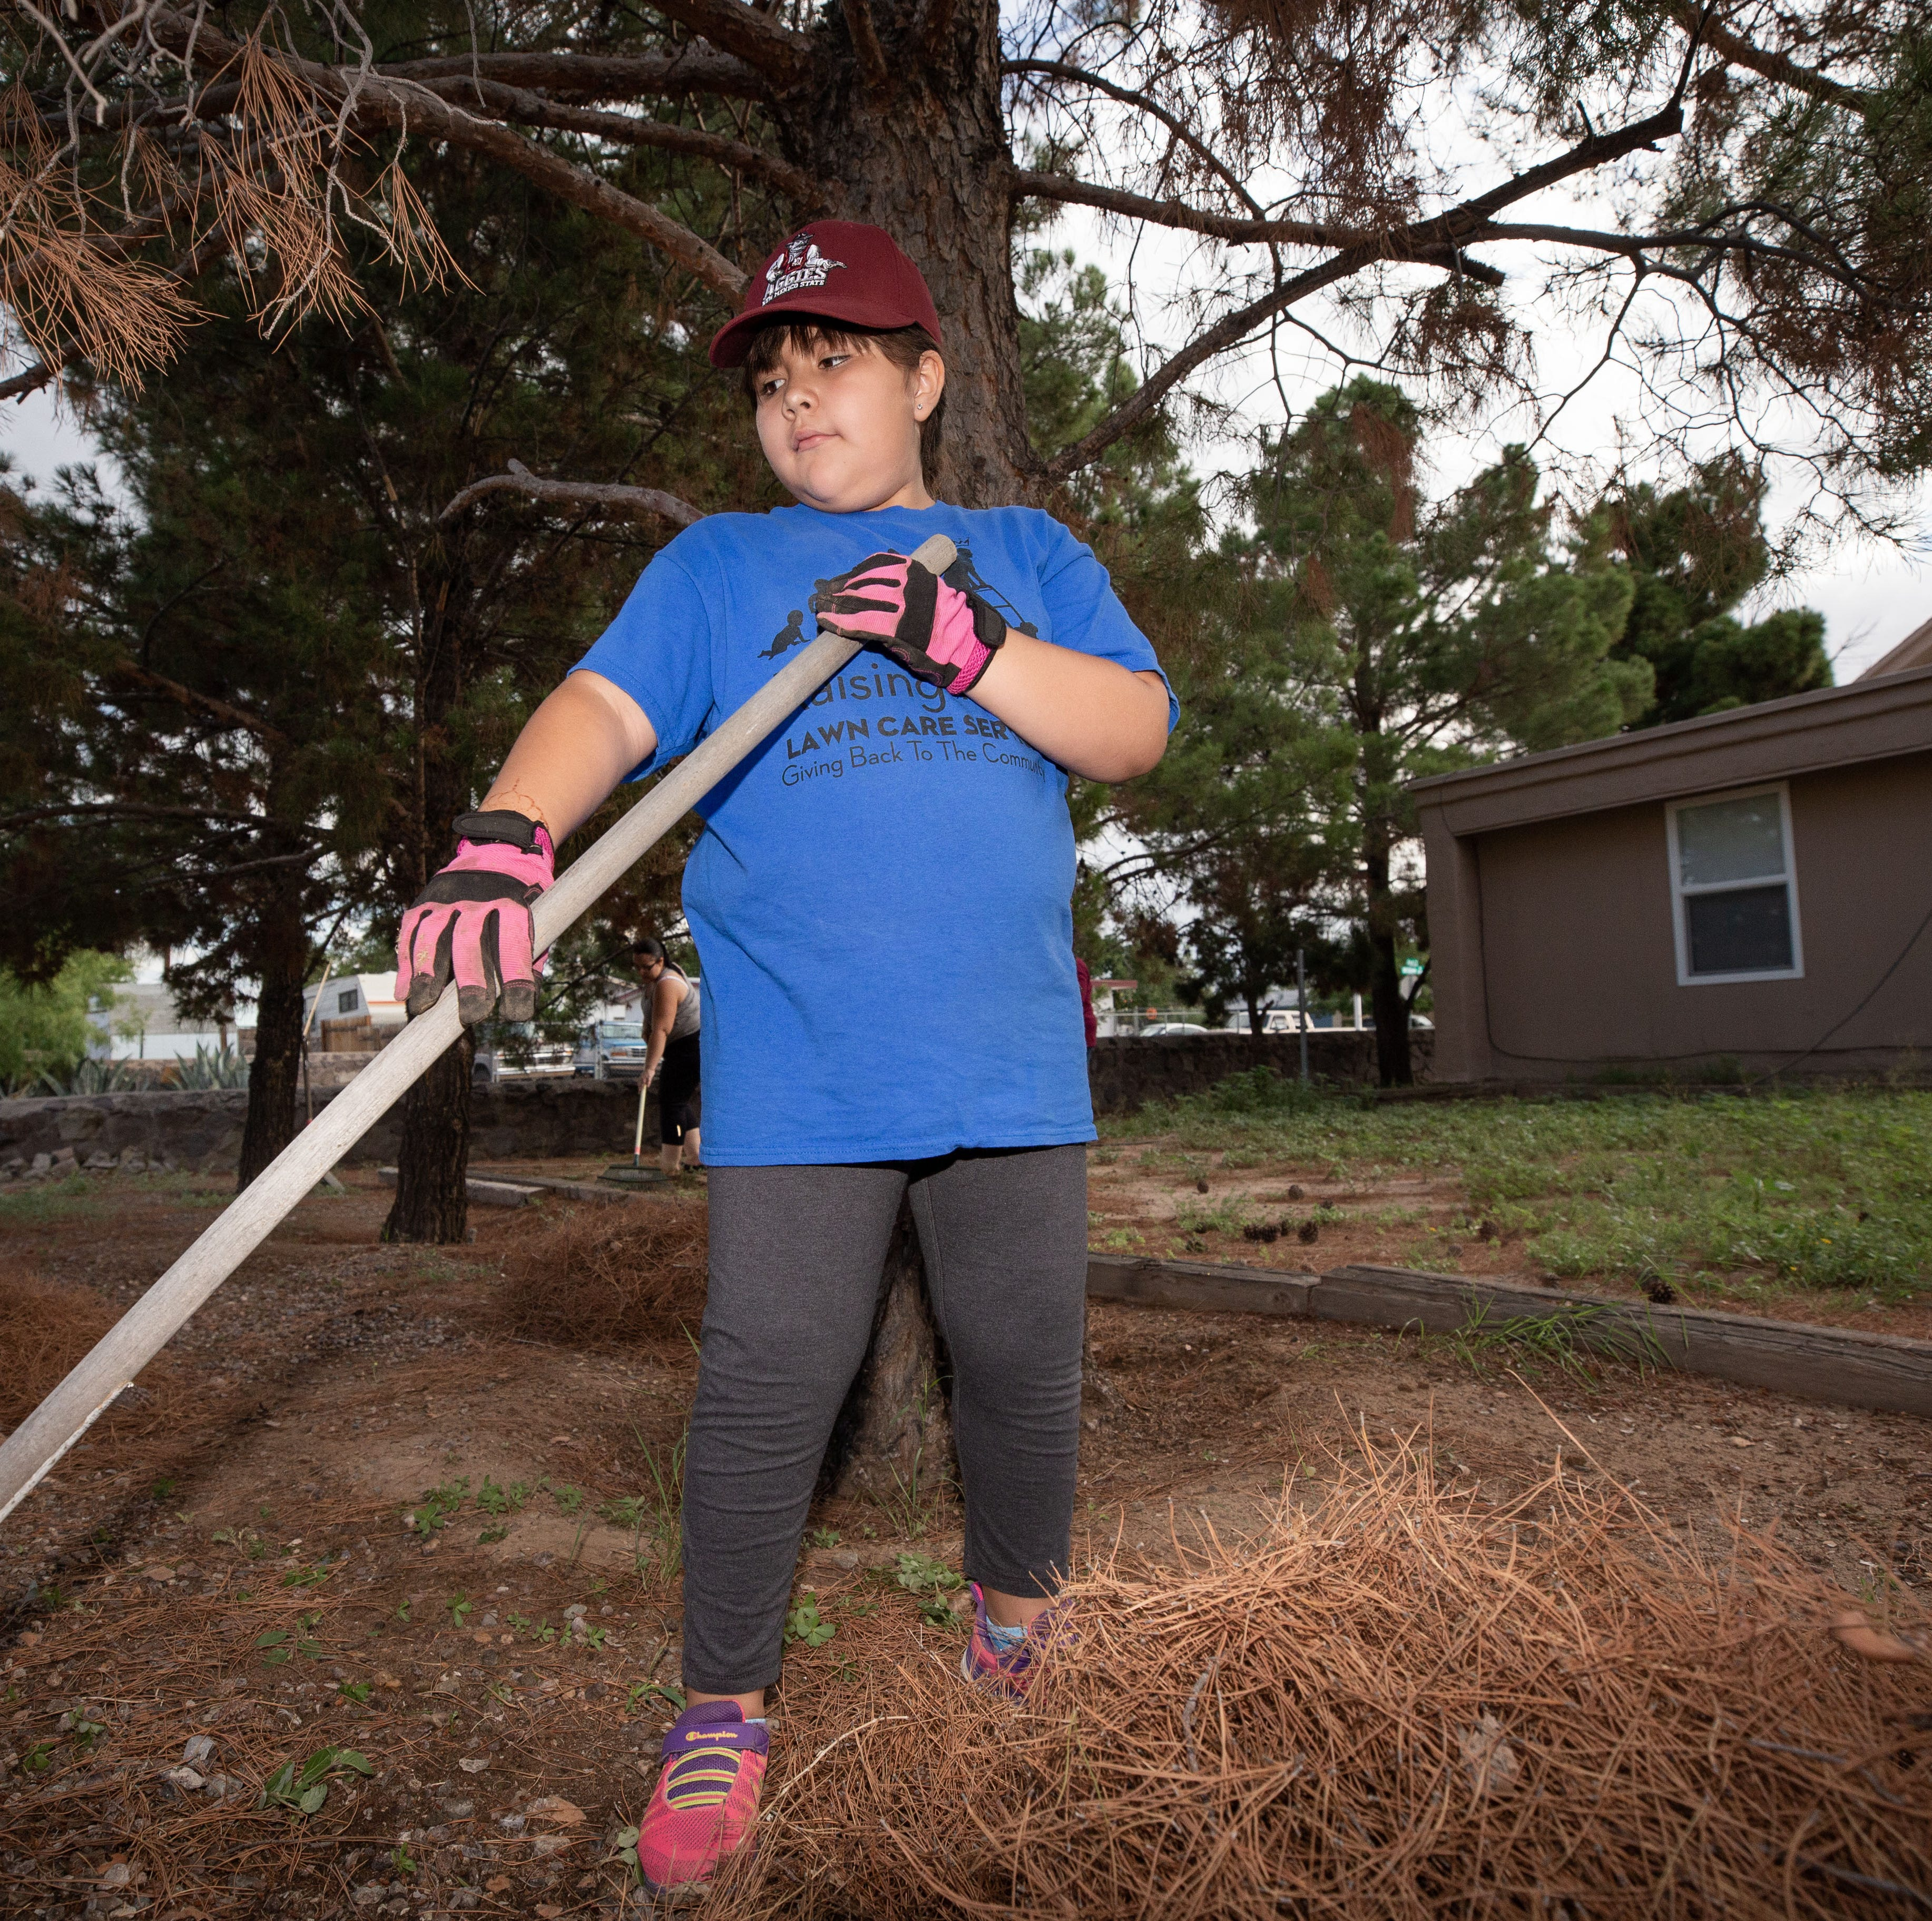 9-year-old Las Cruces girl takes on 50-yard challenge